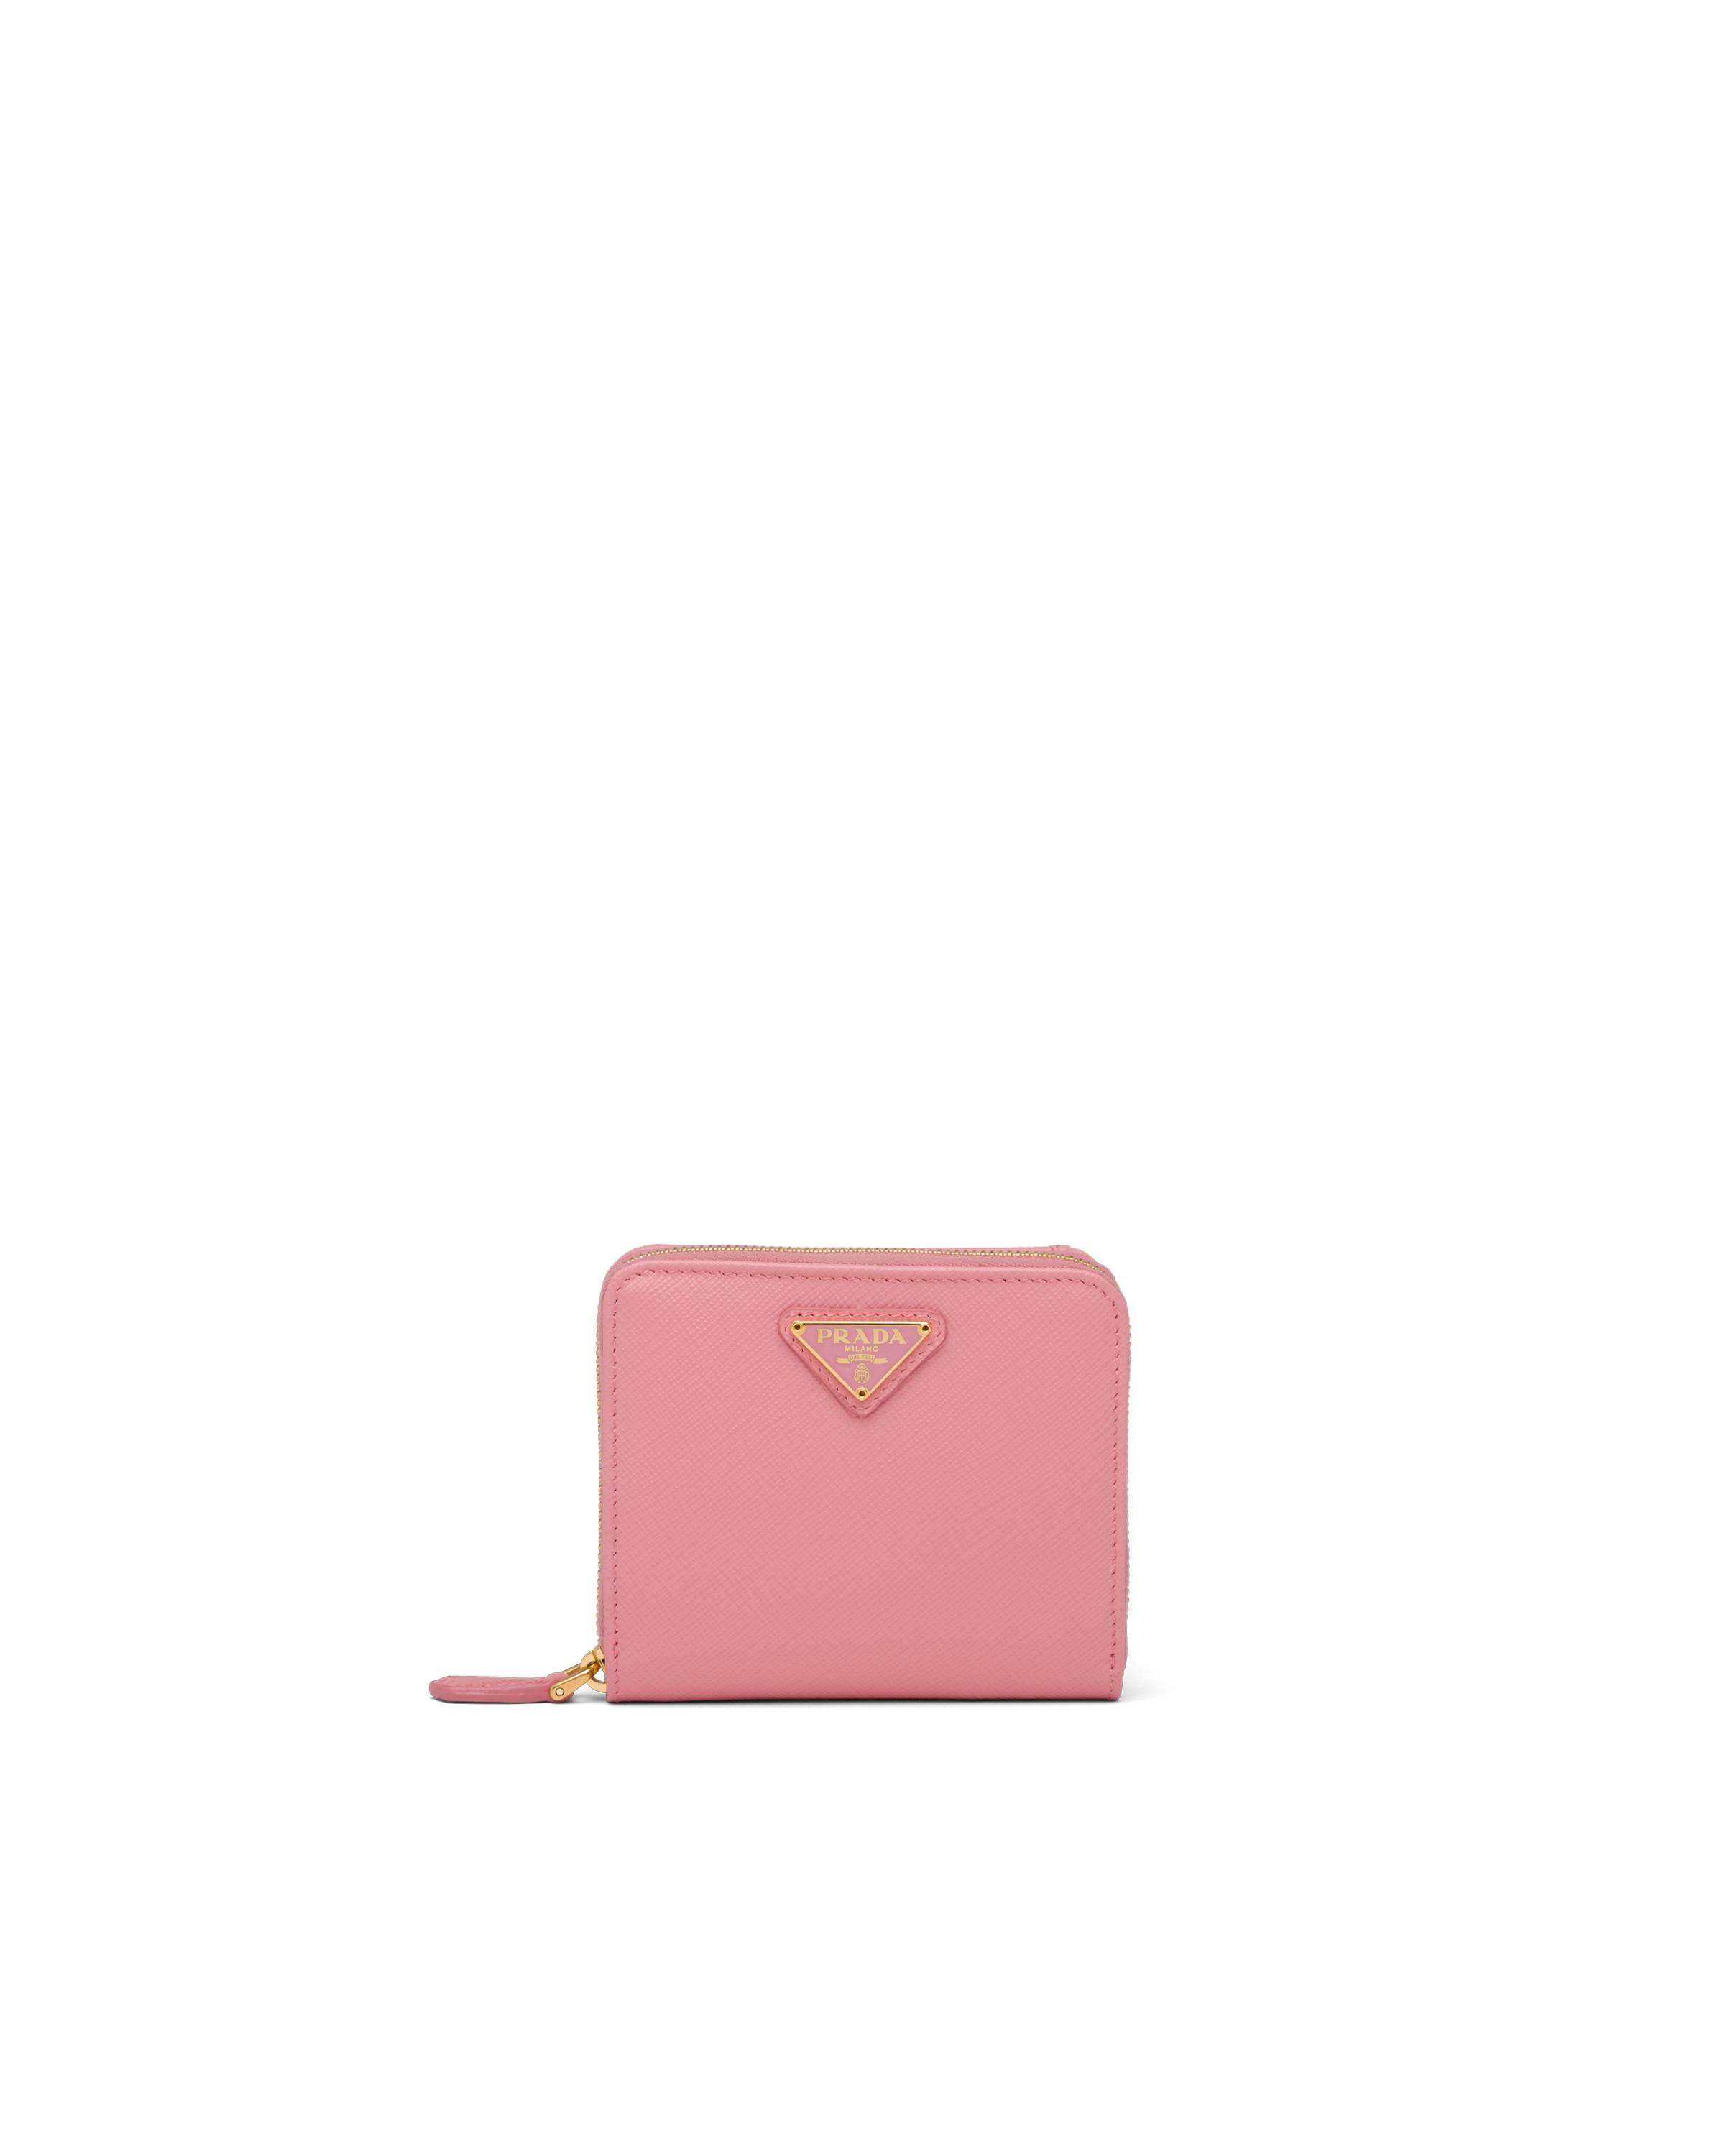 Small Saffiano Leather Wallet Women Petal Pink 6